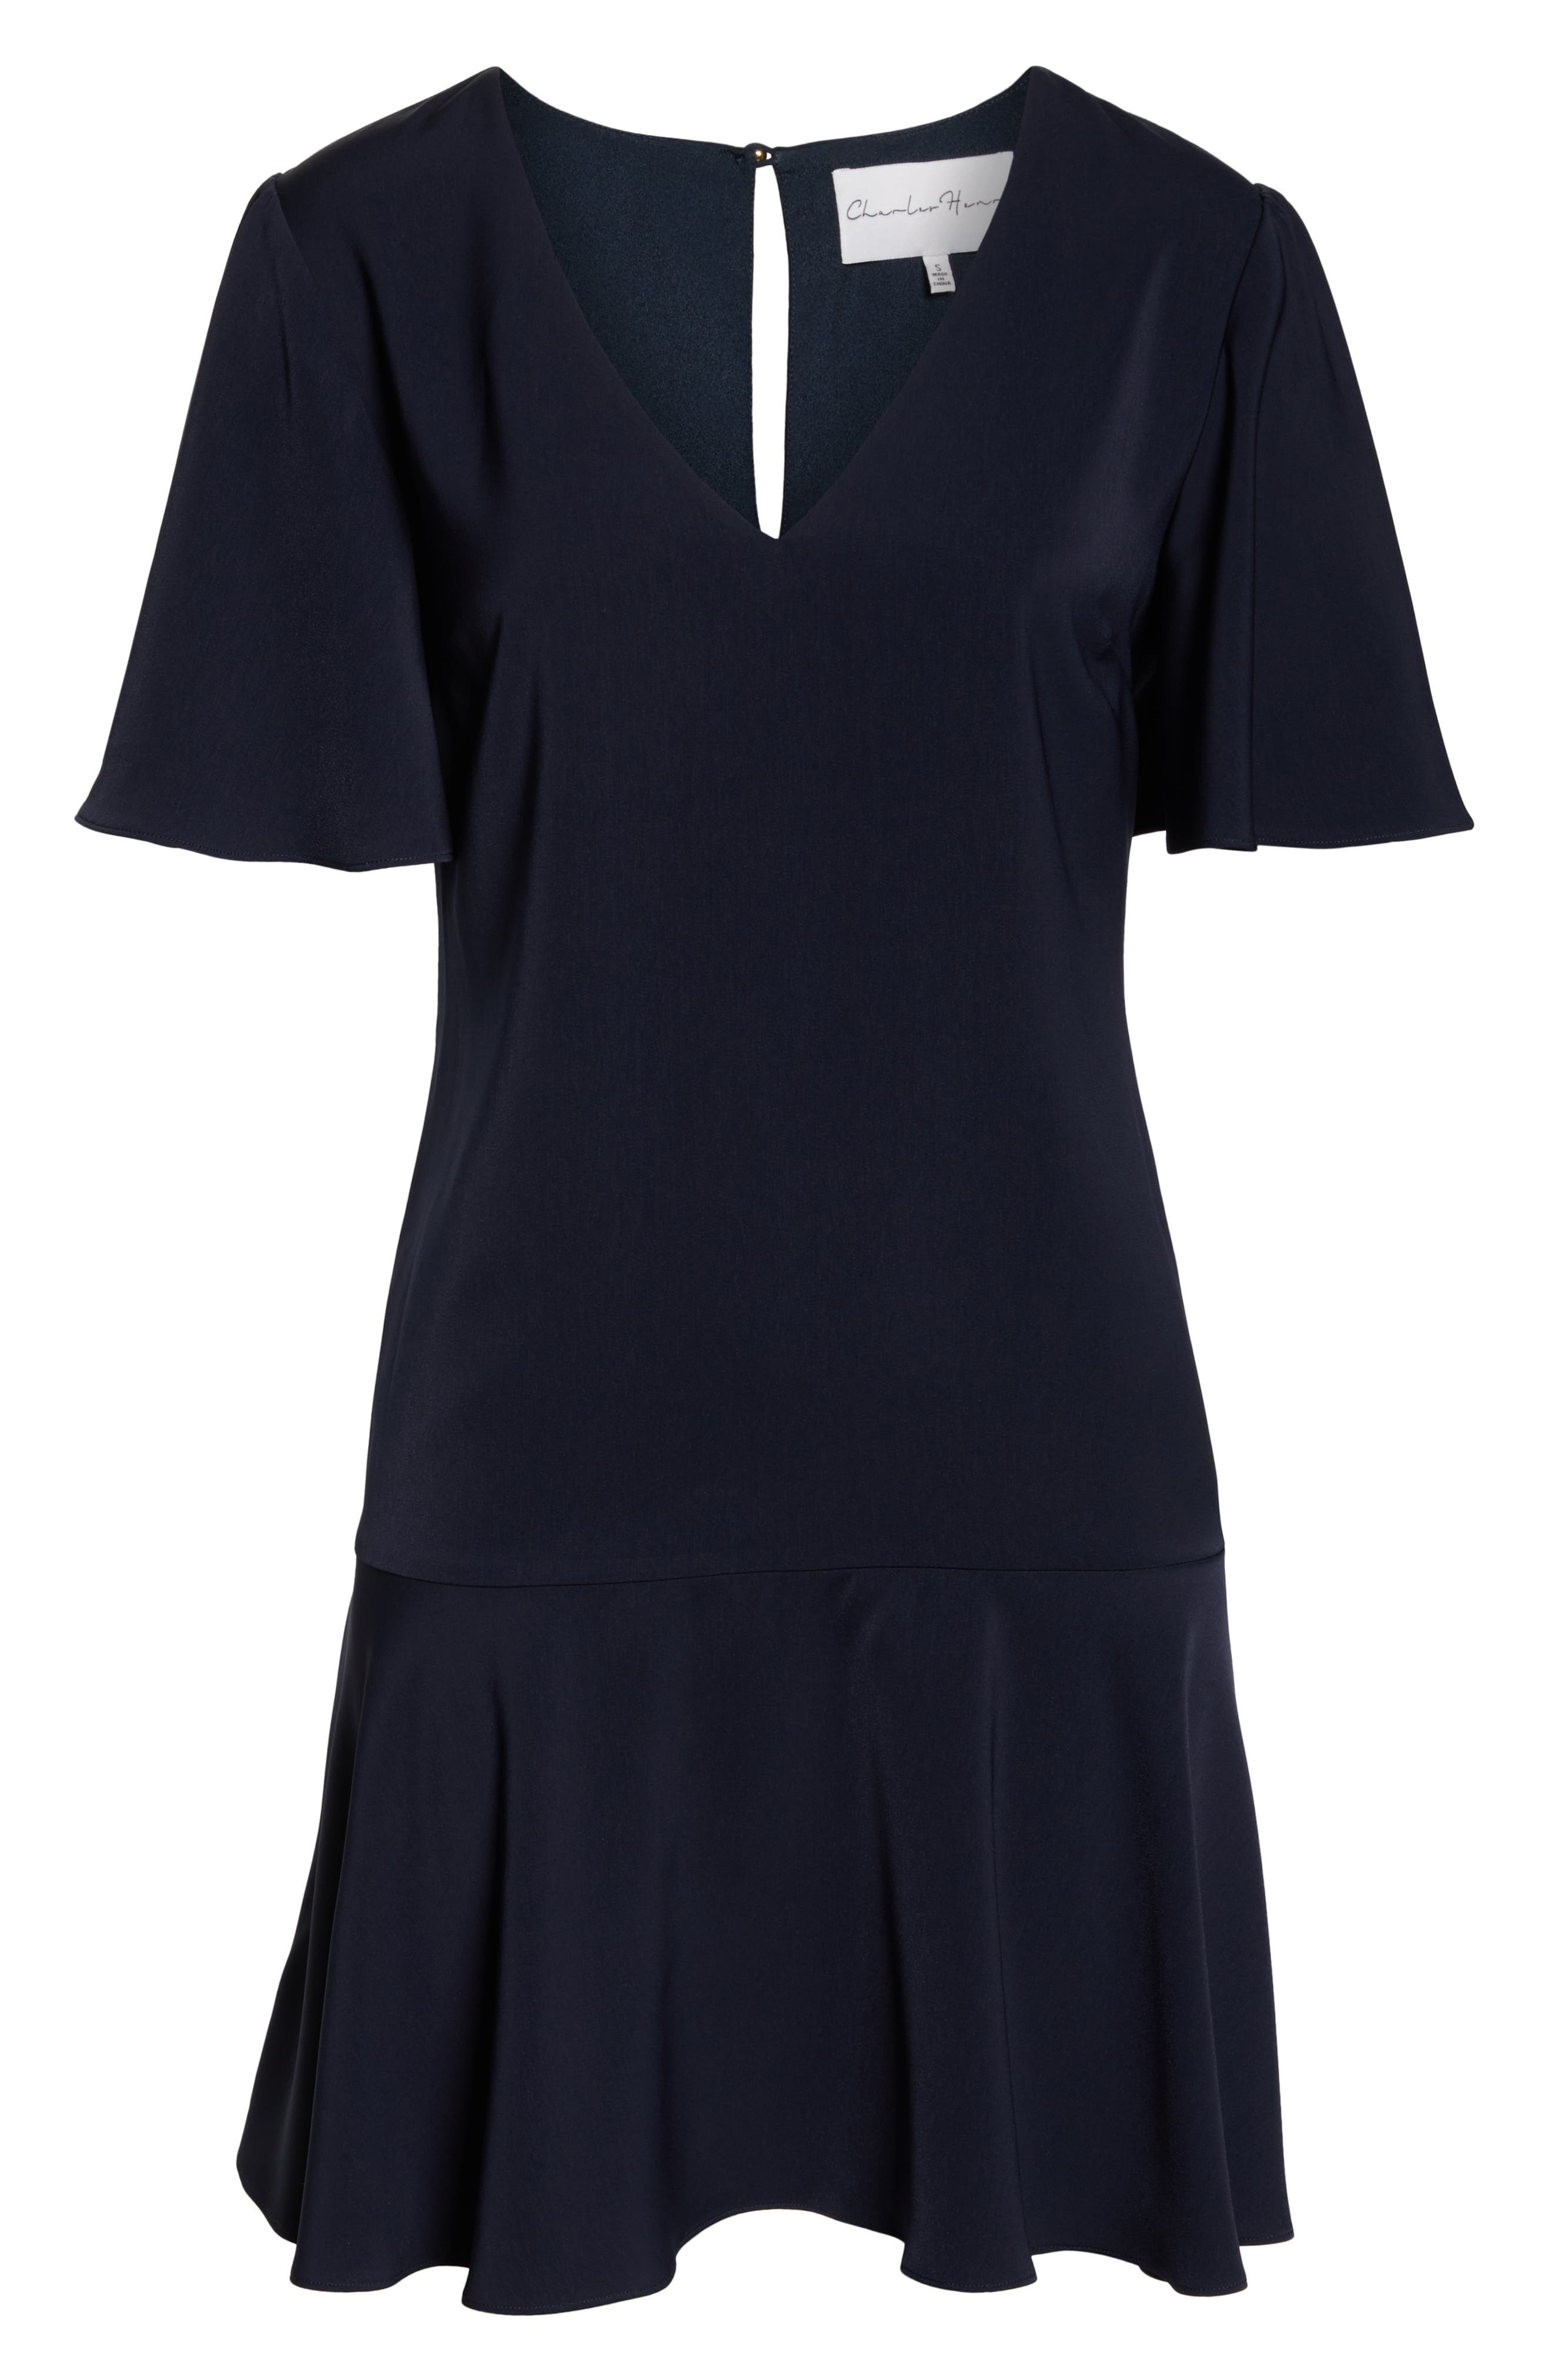 CHARLES HENRY, Flutter Sleeve Shift Dress, Alternate thumbnail 7, color, NAVY